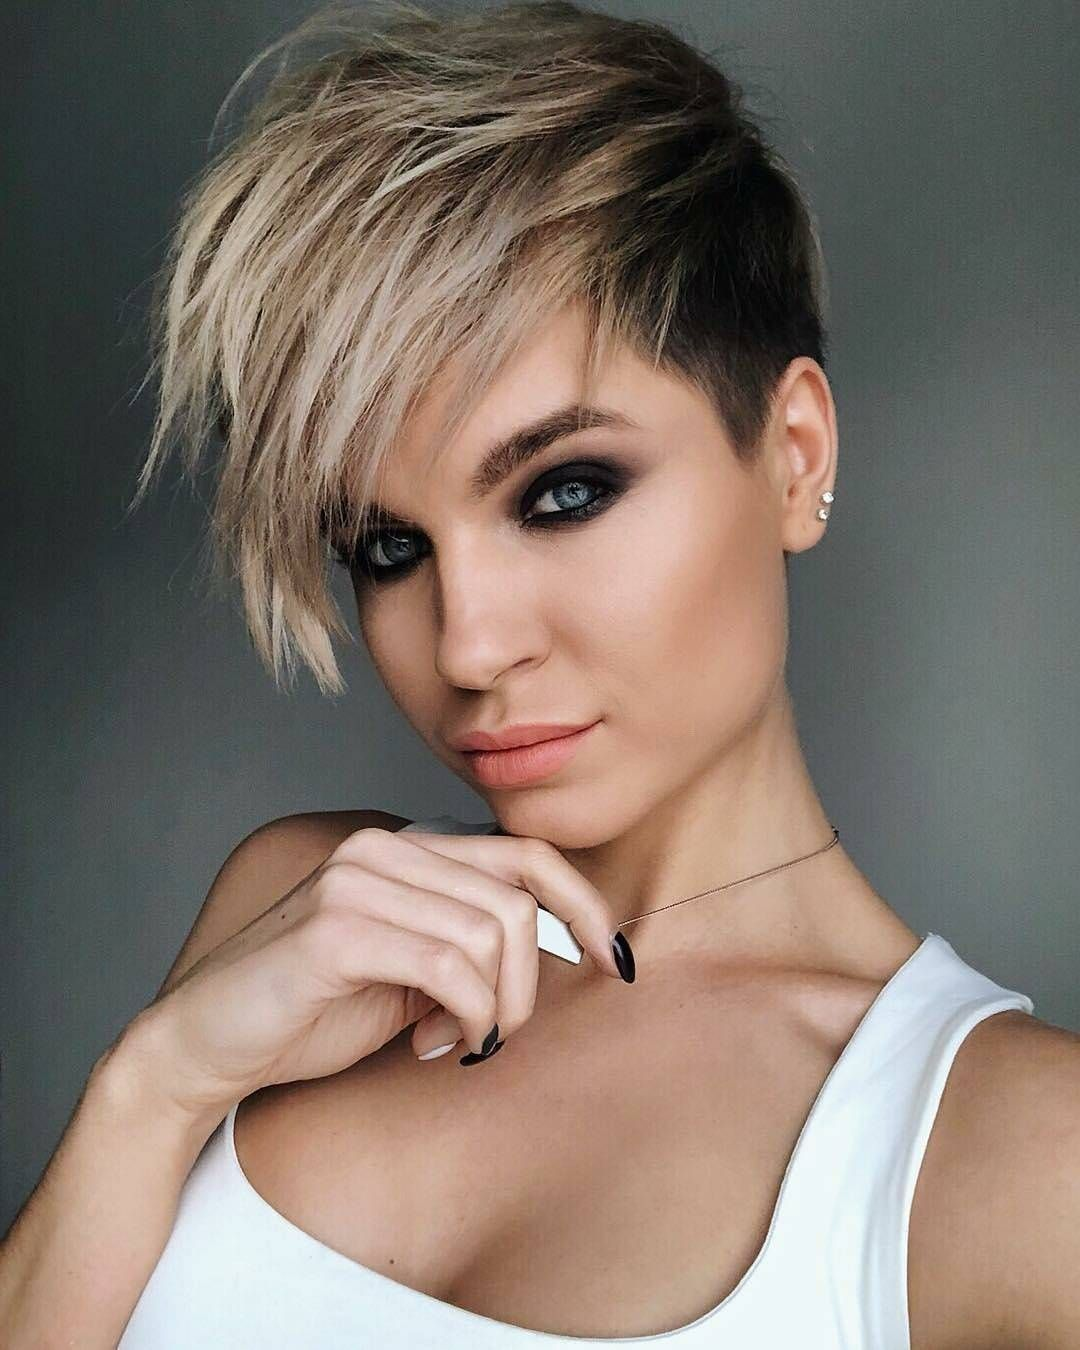 Bold-Boy-Cut-Pixie Roaring and Attractive Short Hairstyles 2020